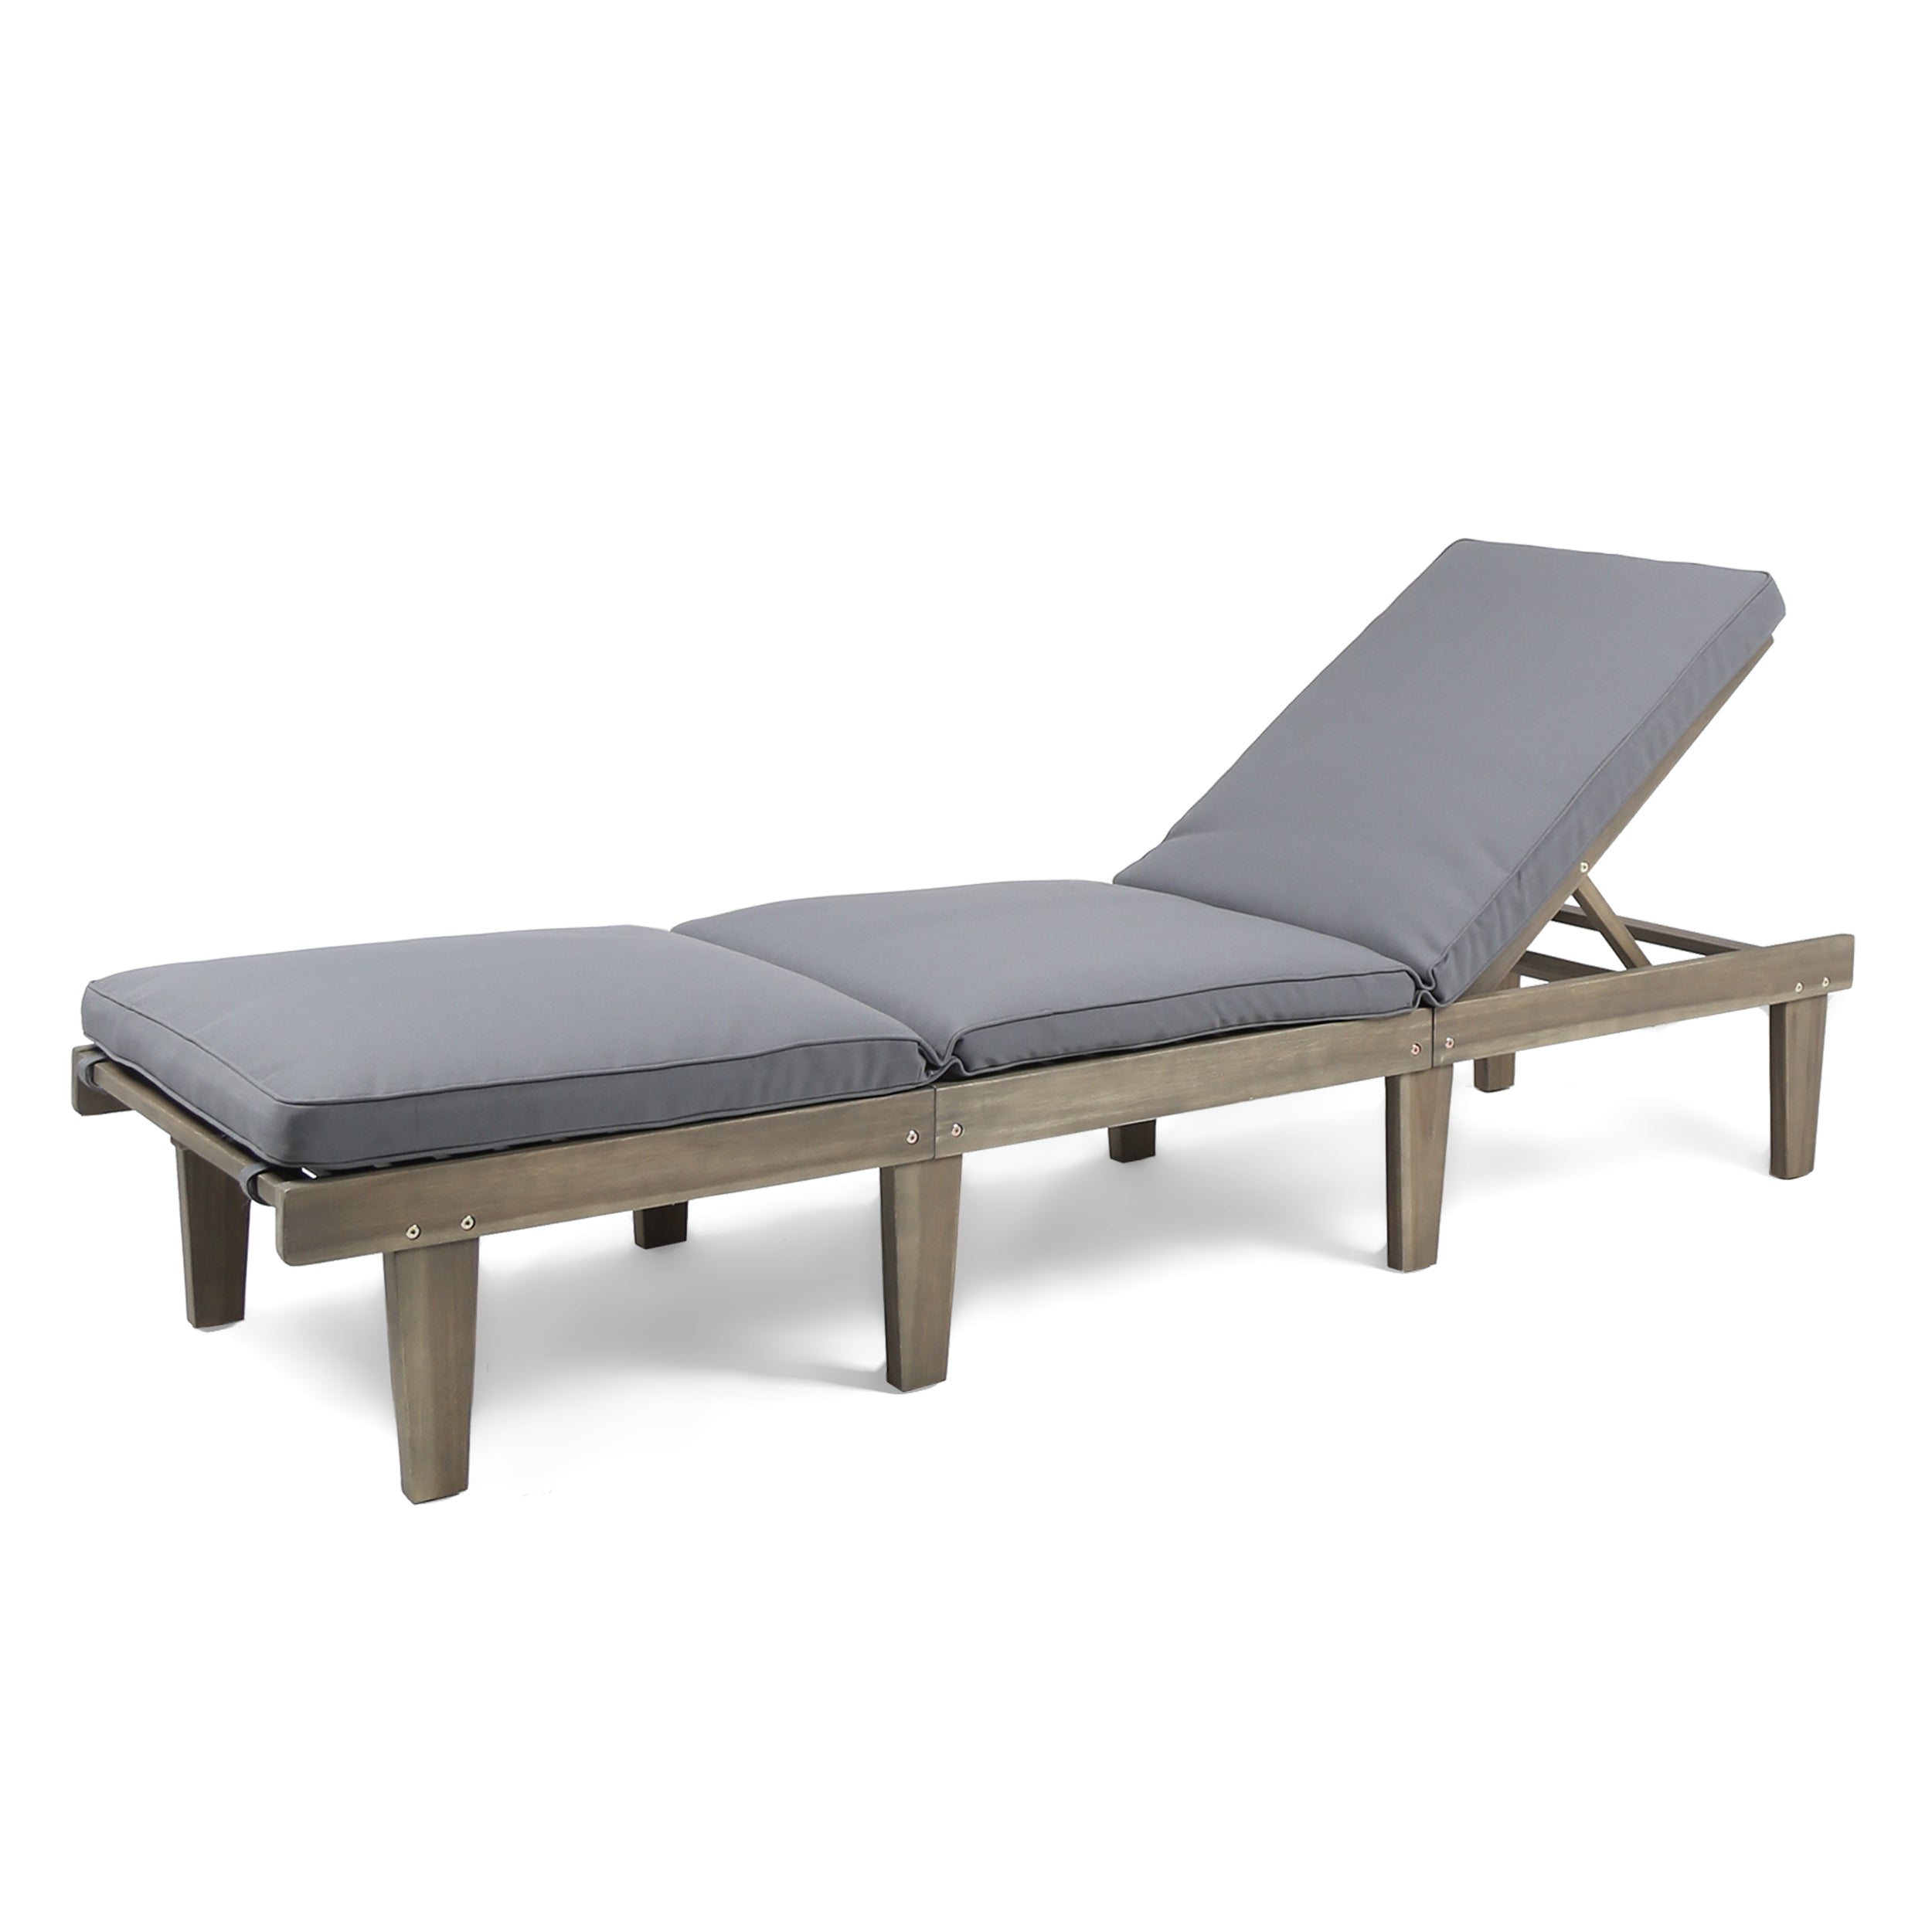 Alisa Outdoor Acacia Wood Chaise Lounge with Cushion Gray and Dark Gray